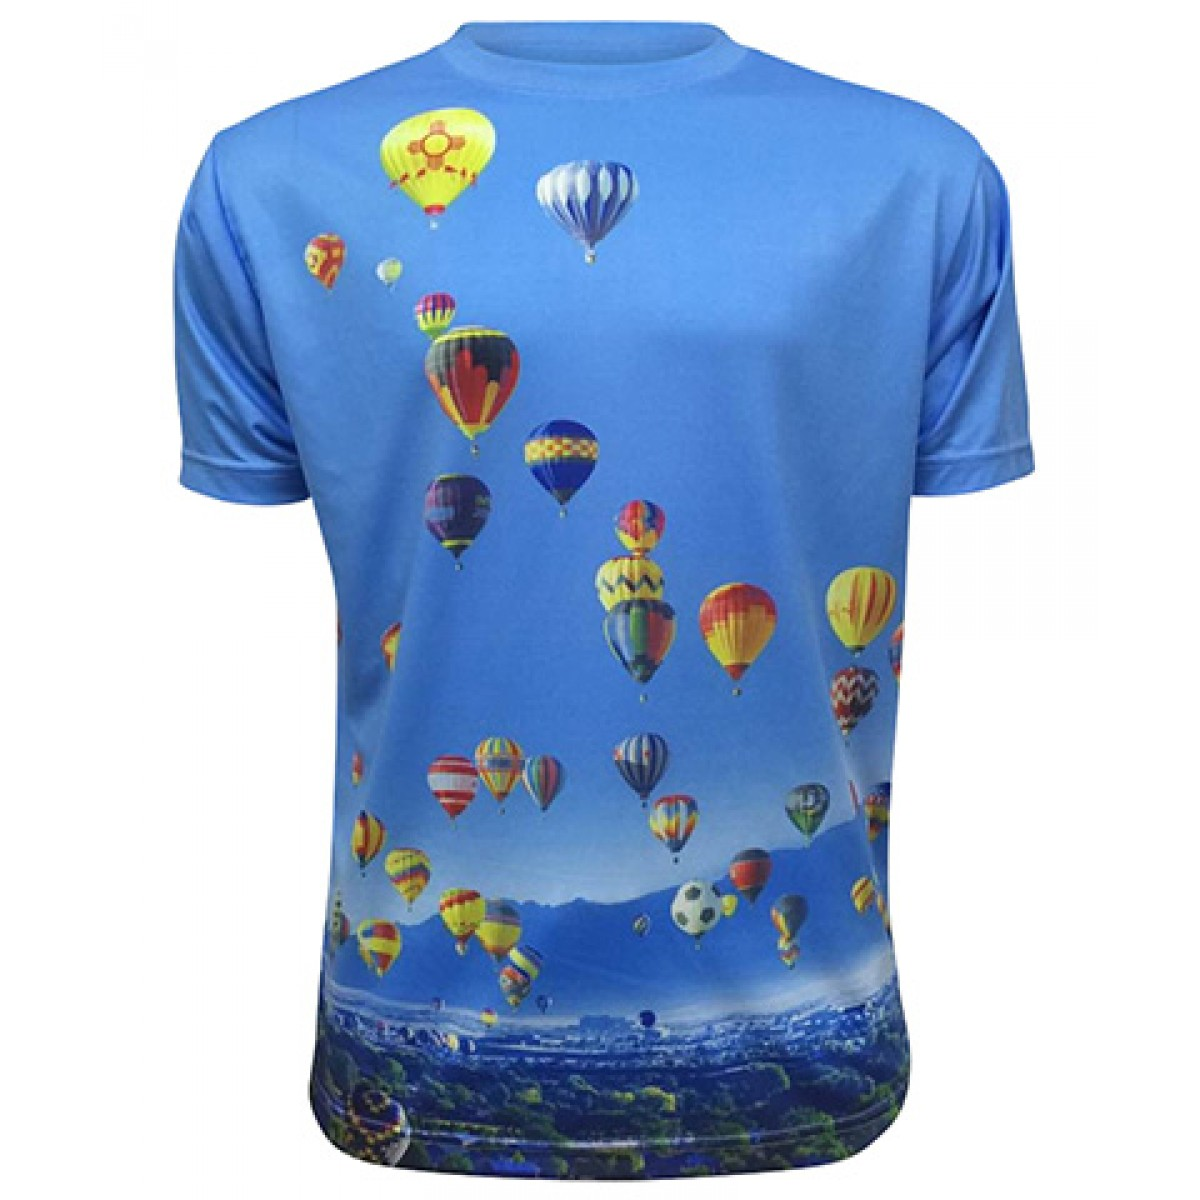 AIBF Sublimated Short Sleeve-Blue-YM